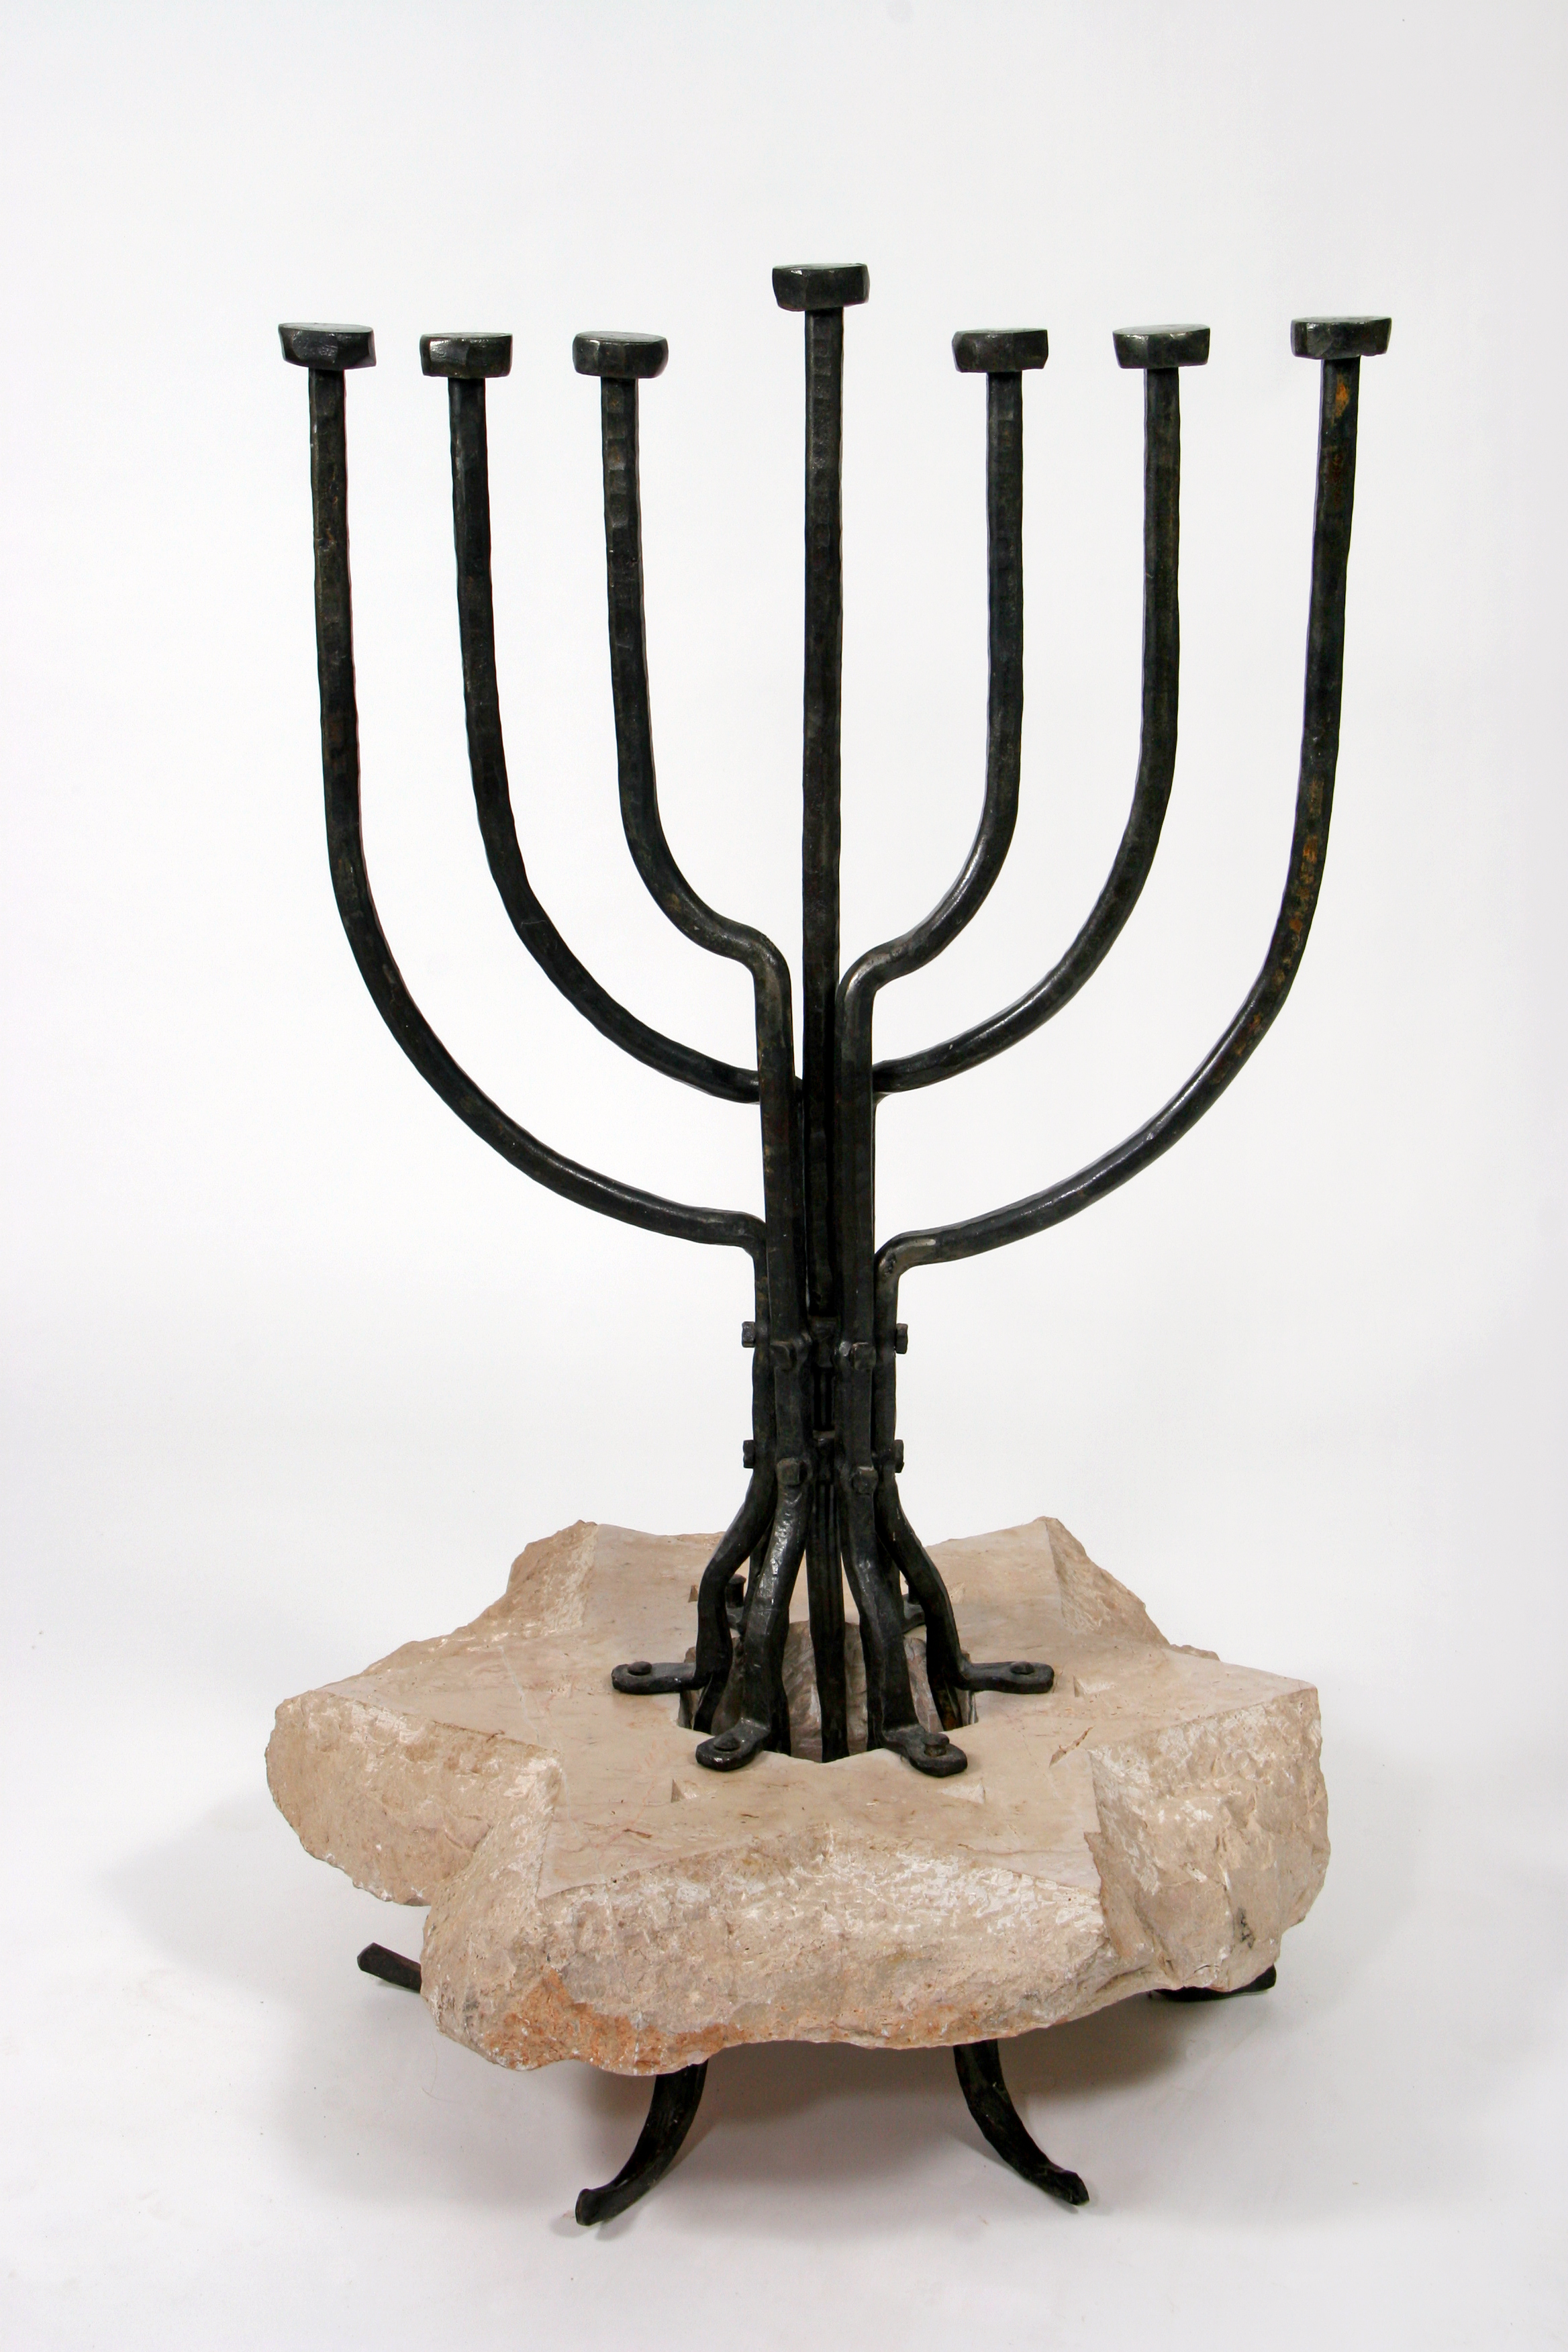 'Menorah in a Star Of David' - Special Menorah of Iron & Stone